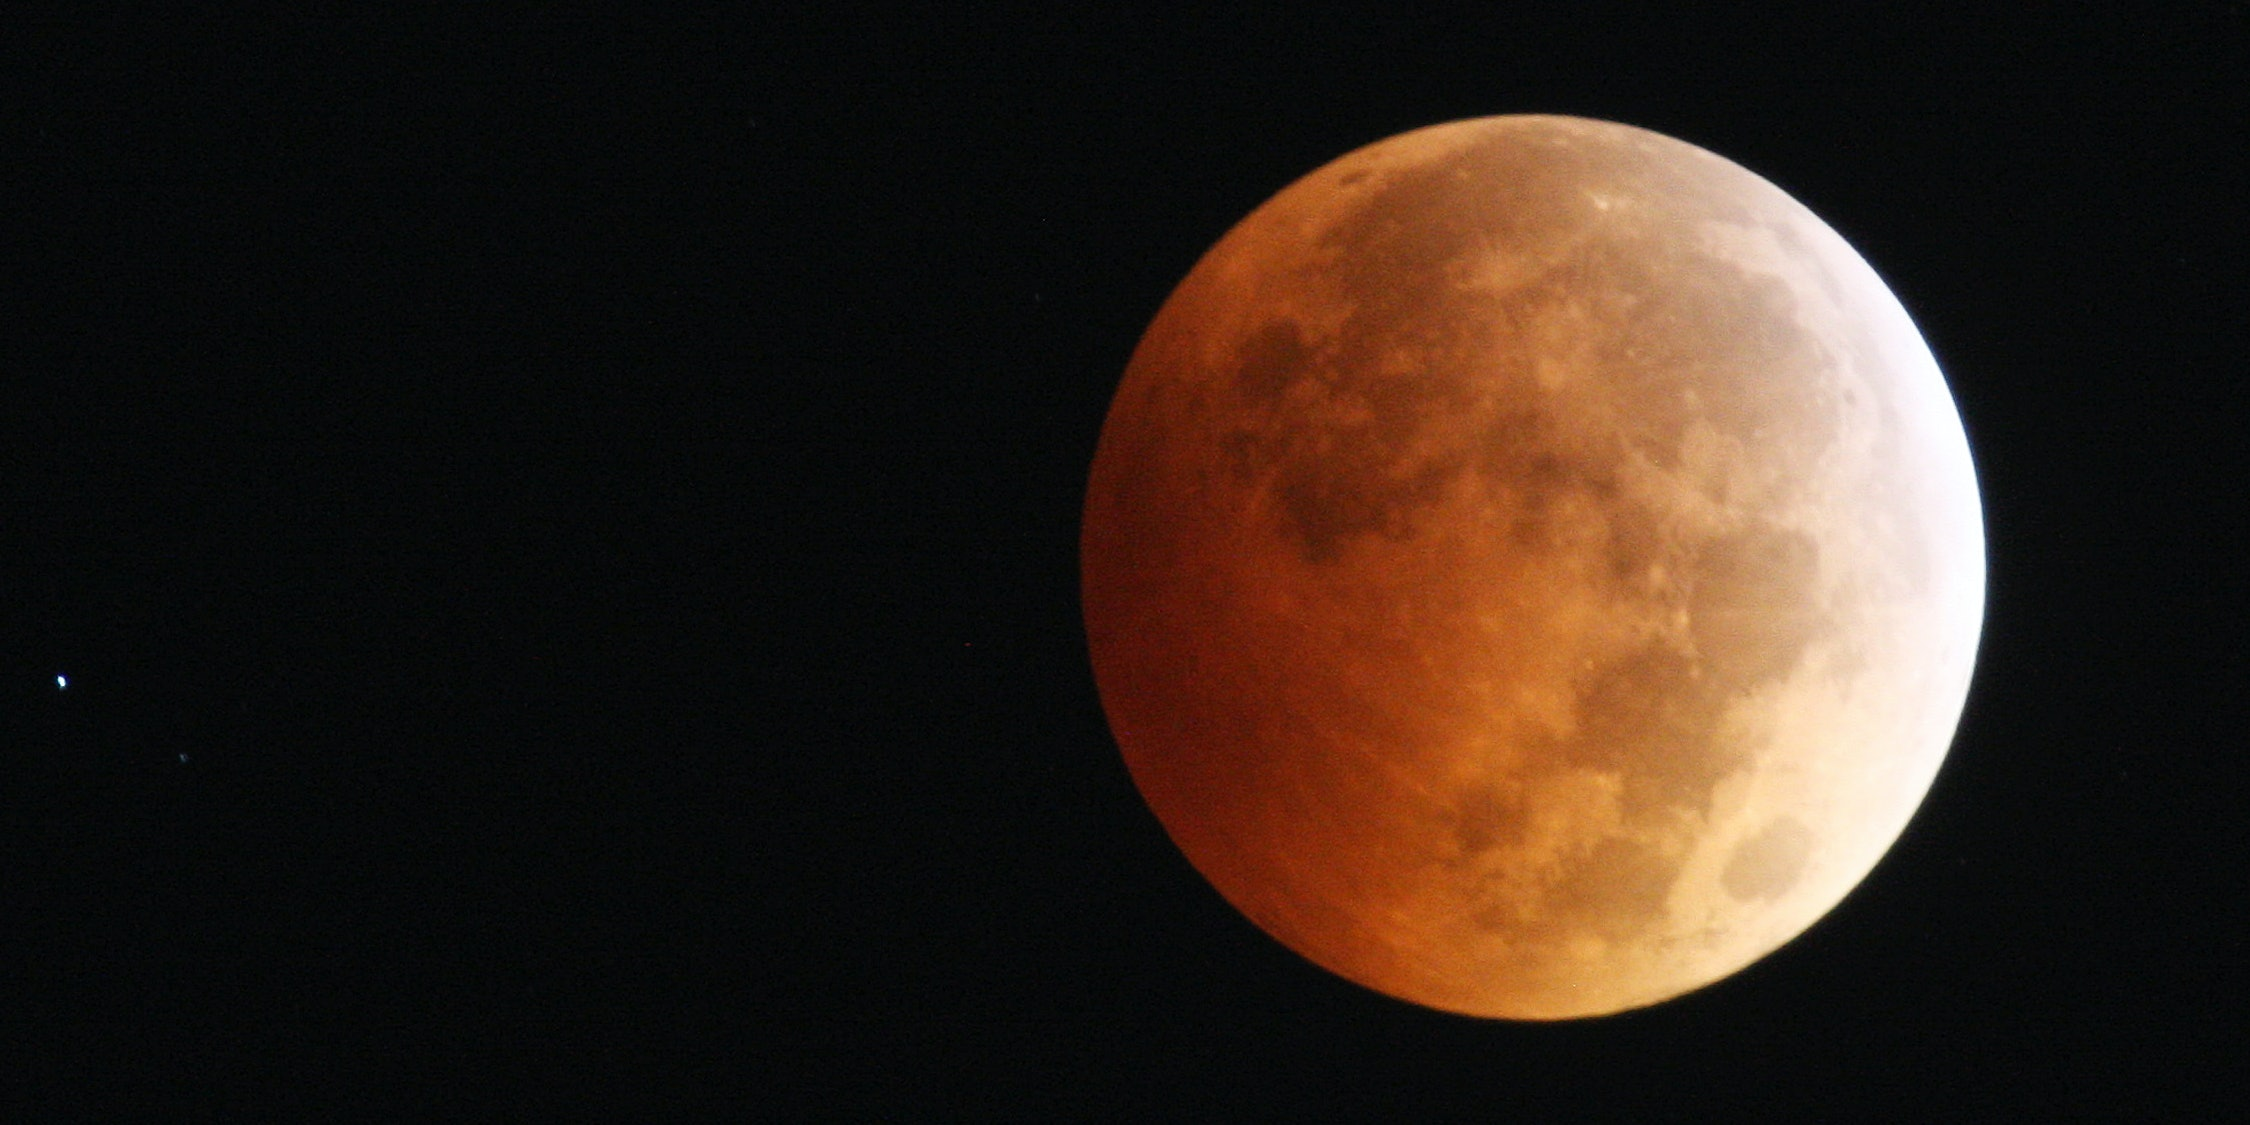 Supermoon Eclipse Will Be the First Since 1982